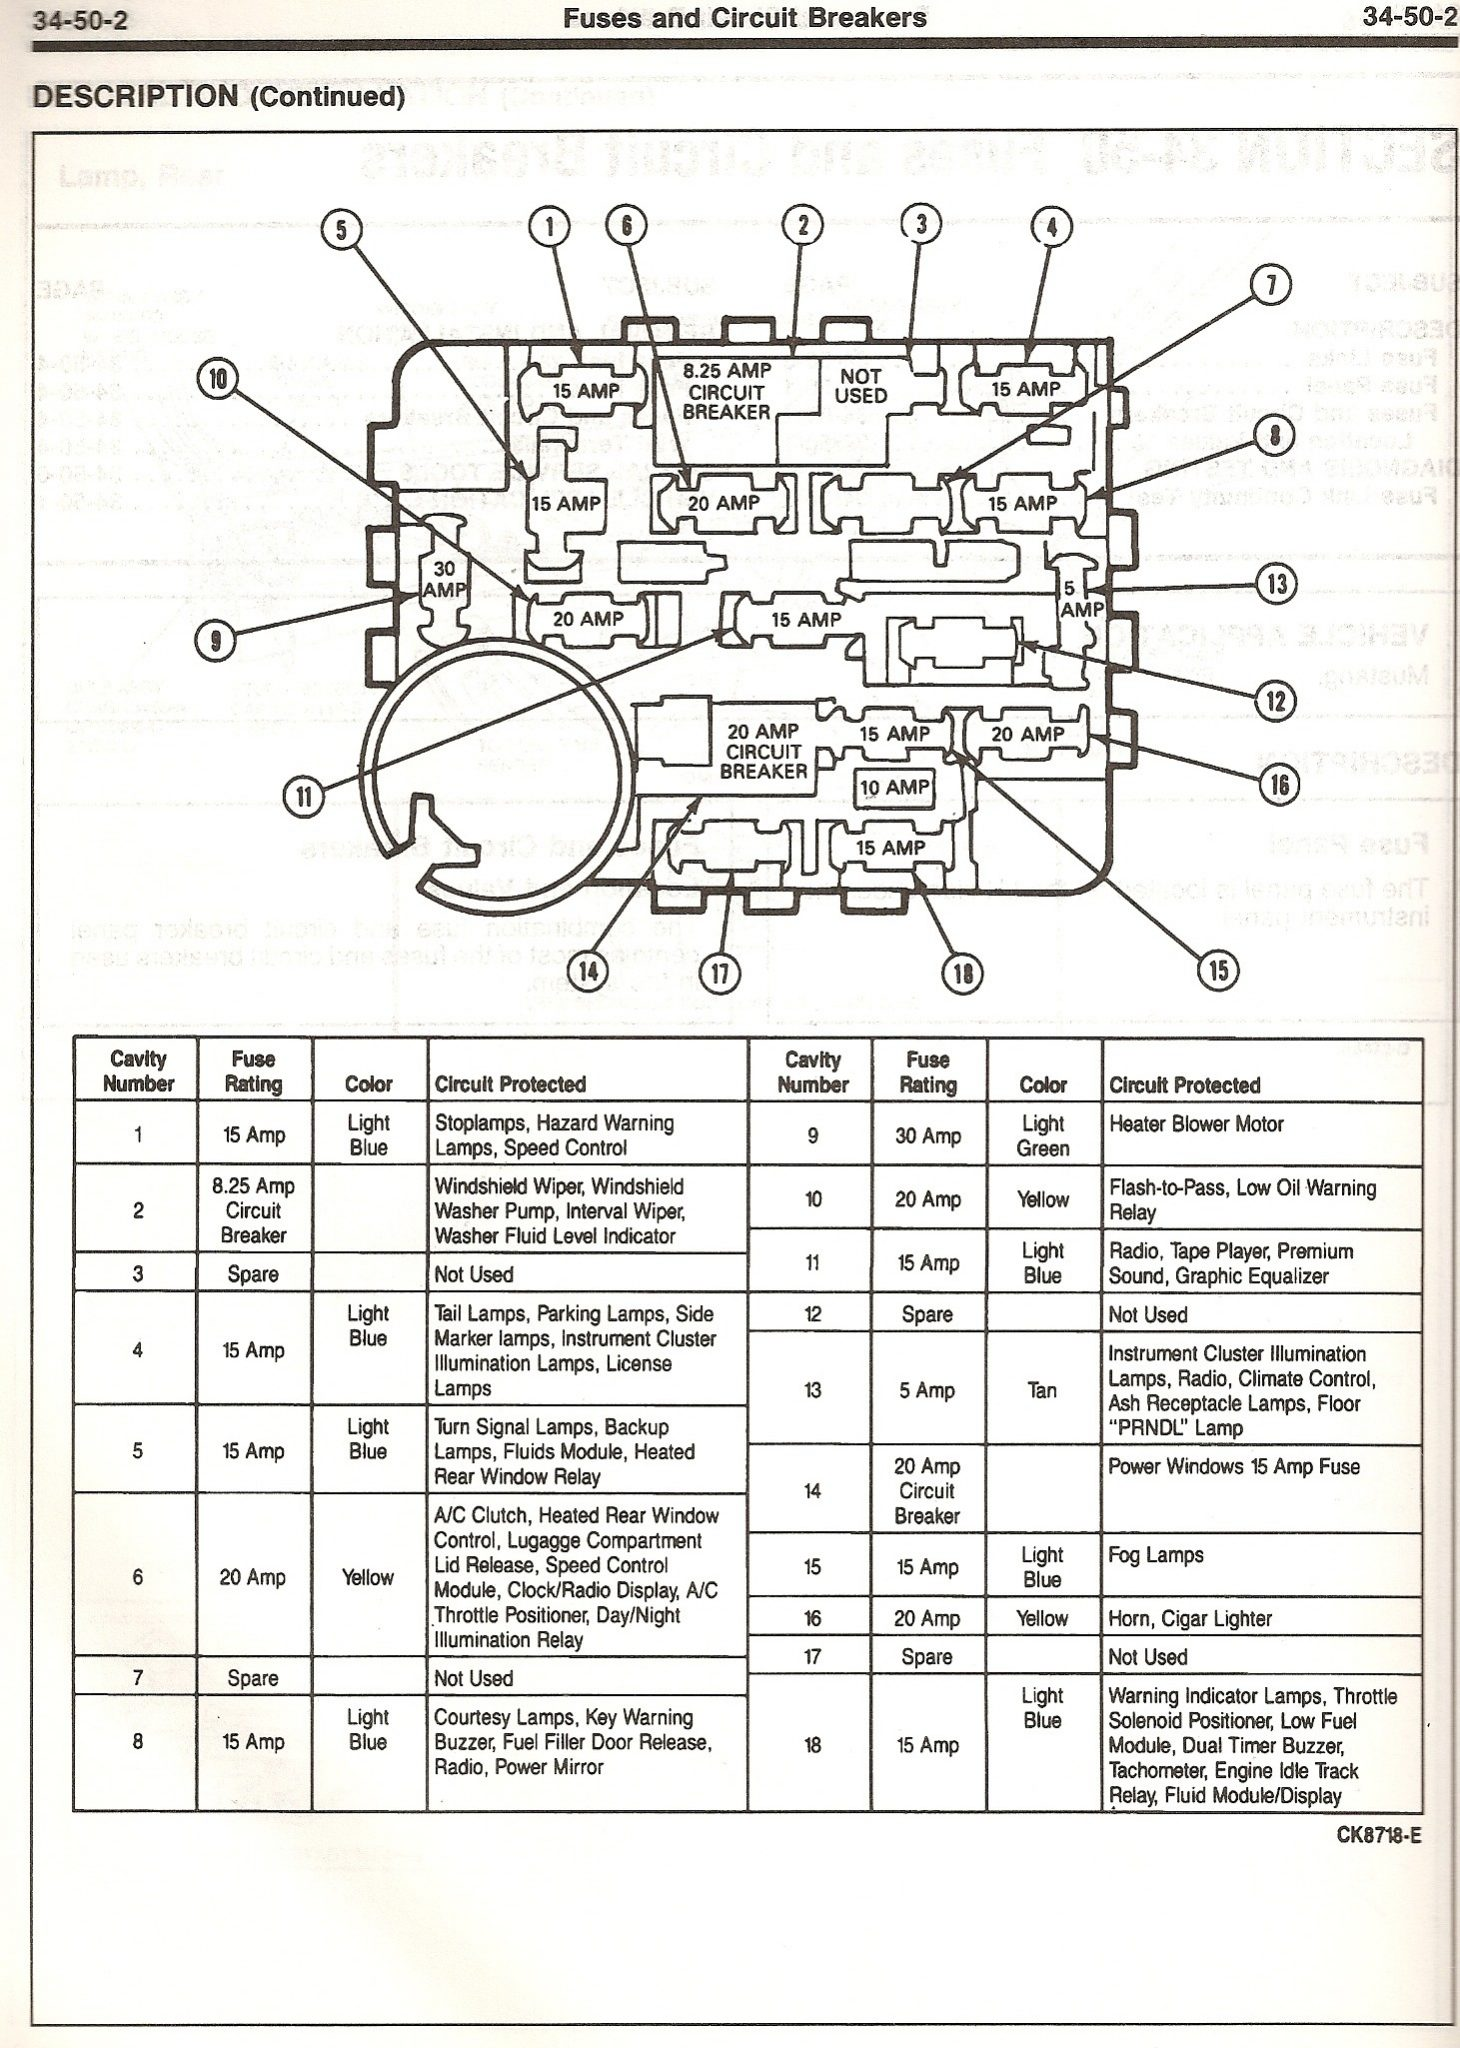 Ford F 250 Front Abs Wiring Diagram moreover Honda Civic Cruise Control System Wiring And Circuit furthermore L9000 Wiring Diagrams as well  in addition P 0900c152800781b2. on stereo wiring harness for 2001 ford f150